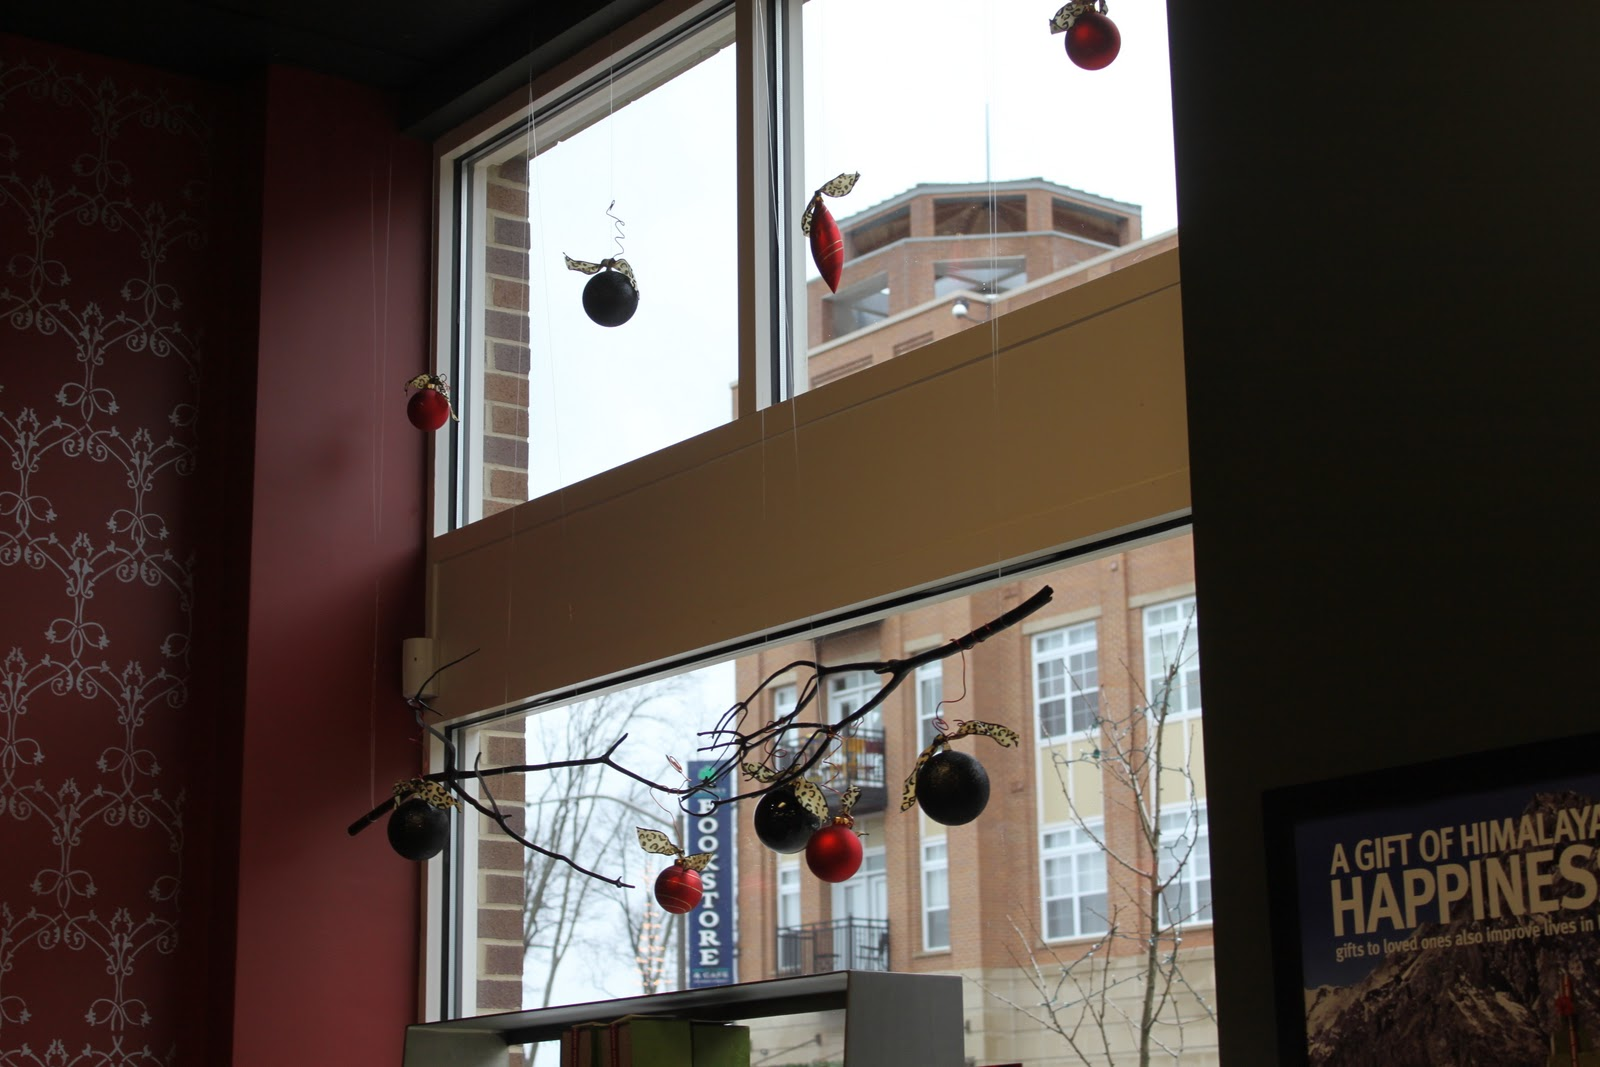 merry me events: Nicholas j salon and spa | Holiday Decor ...